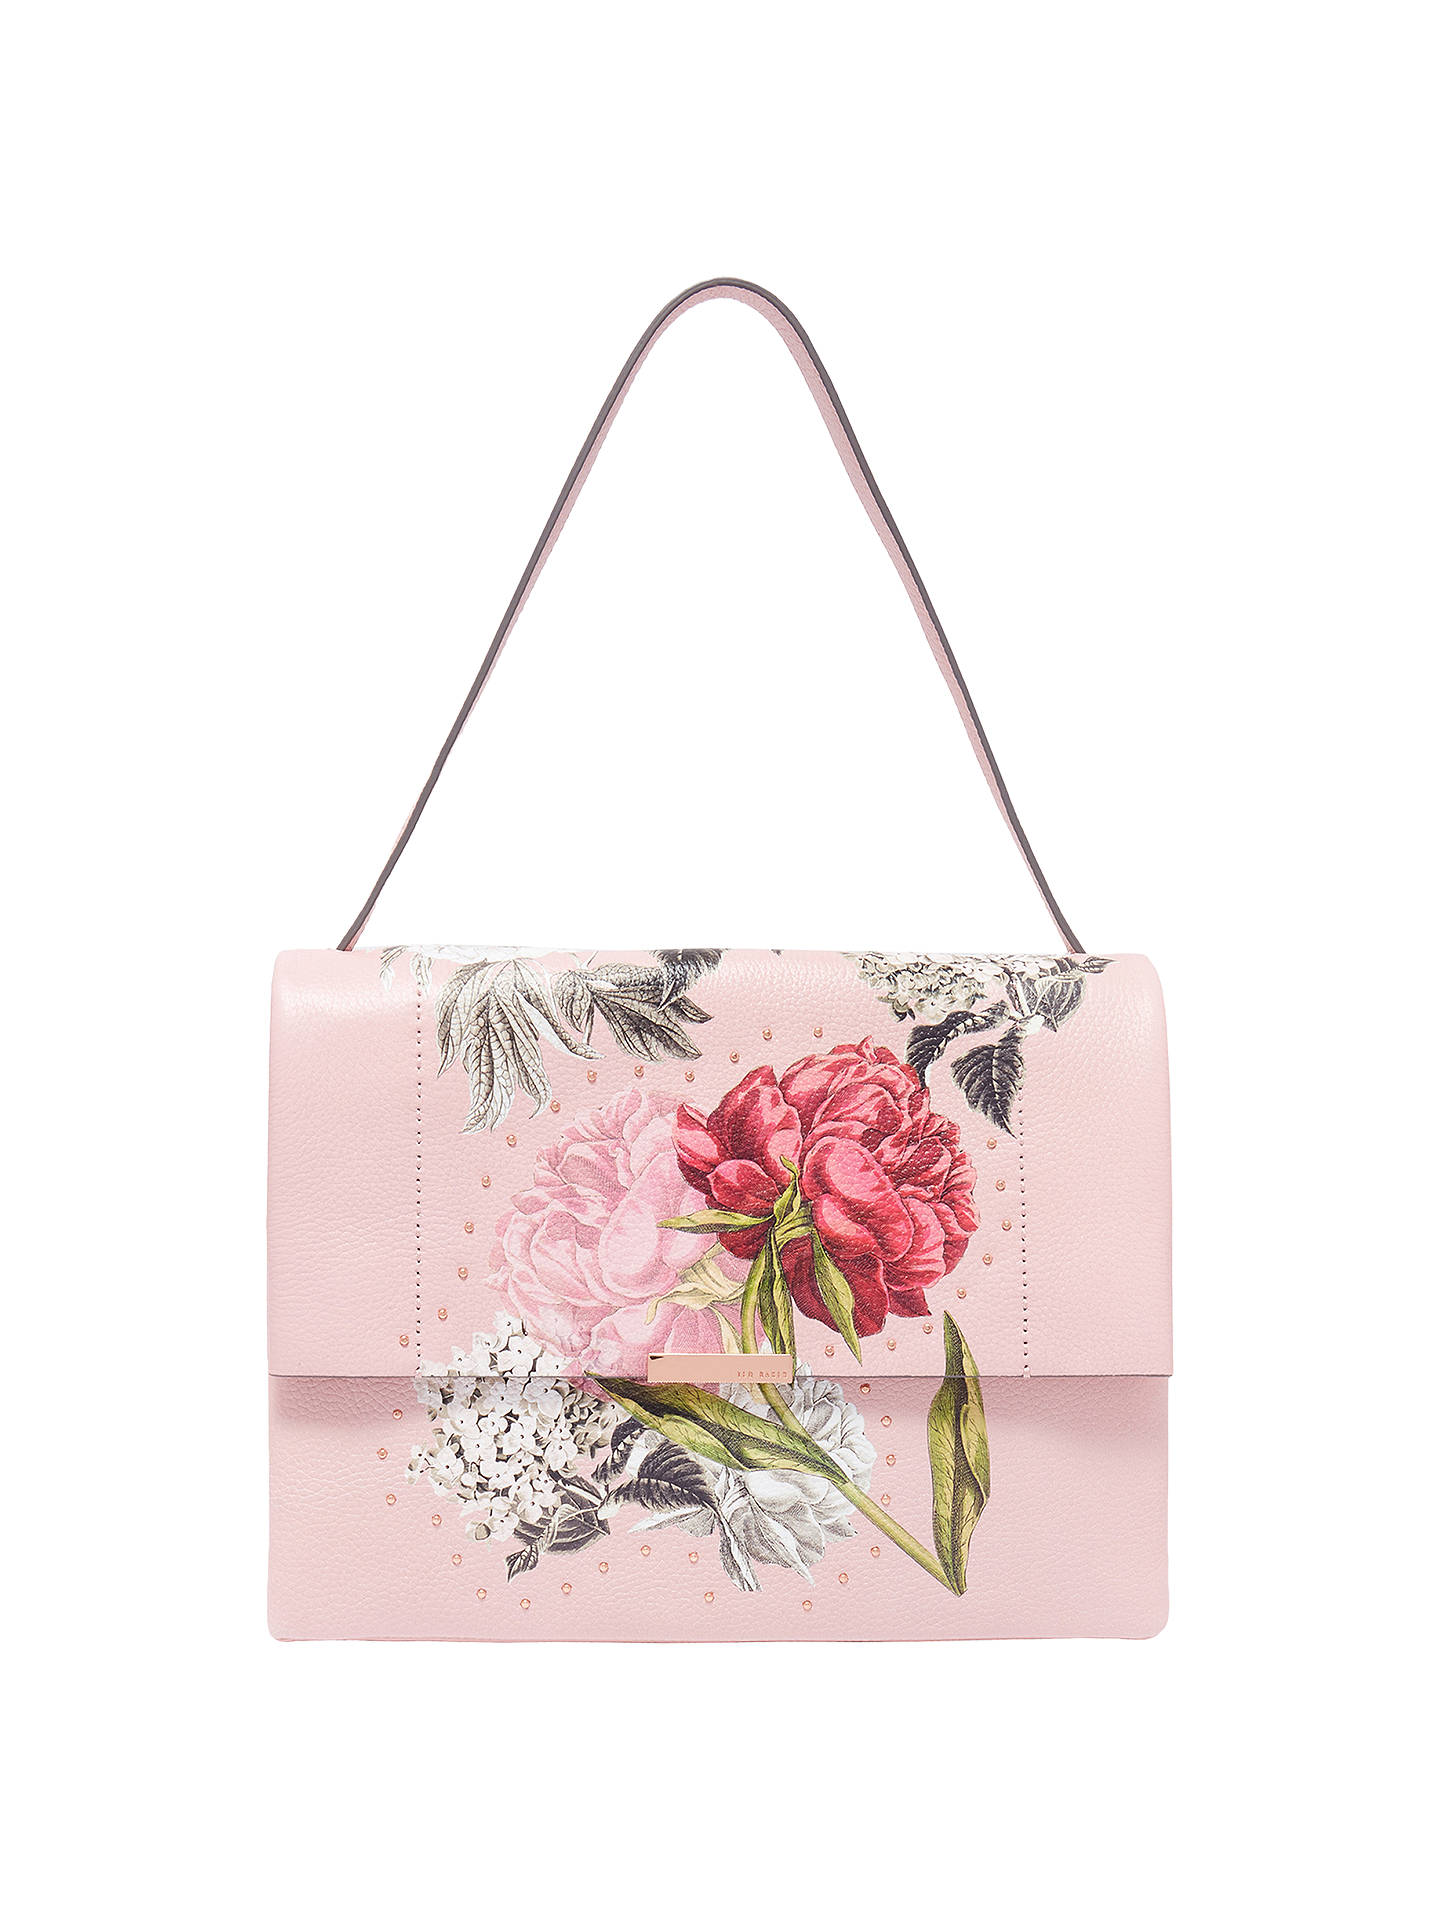 0a6e850165be Buy Ted Baker Peonii Palace Gardens Leather Shoulder Bag